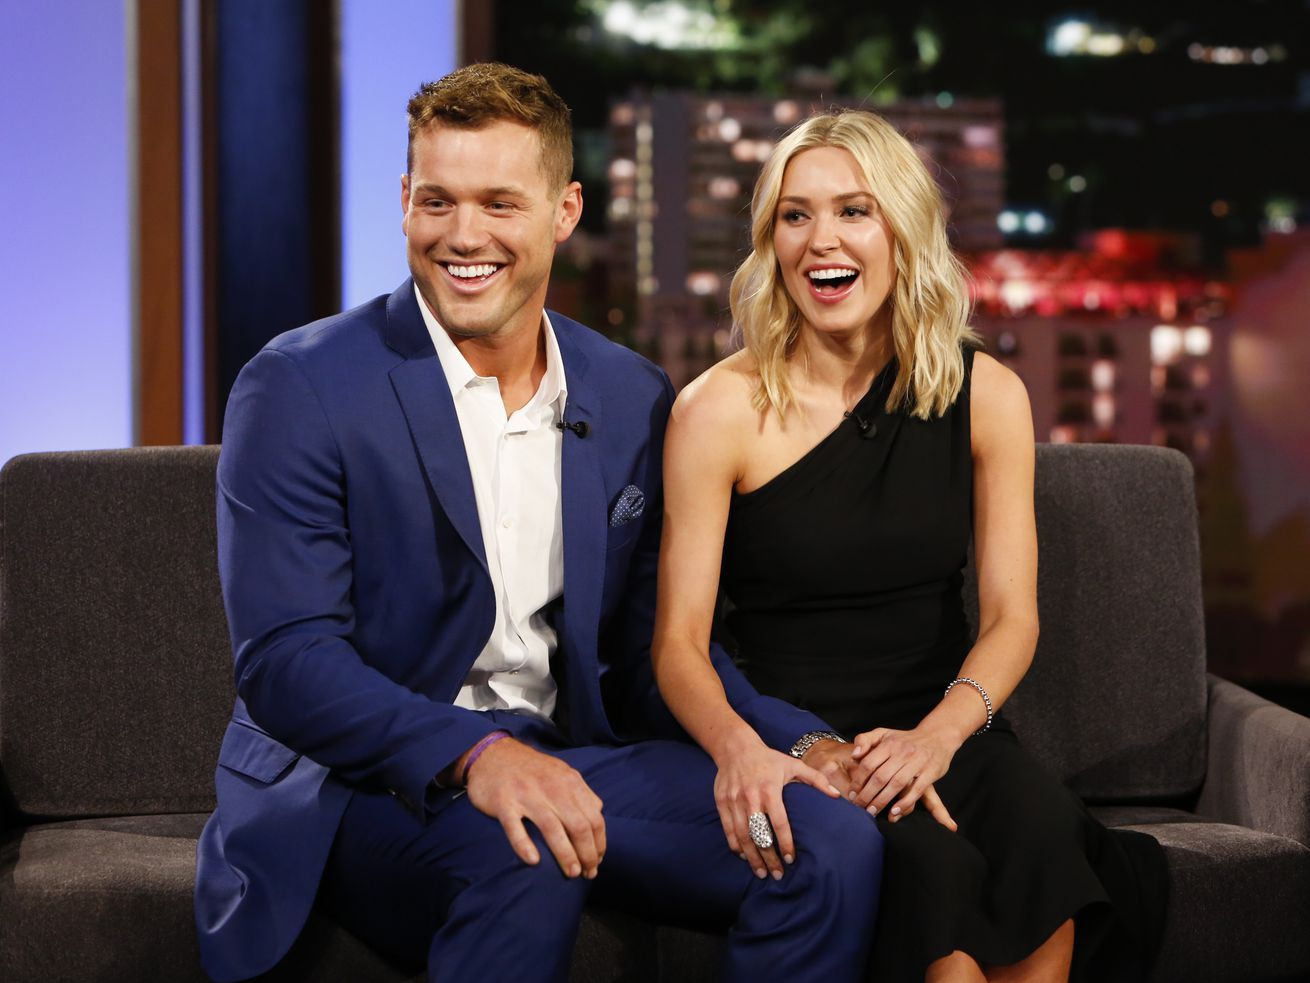 Colton Underwood and Cassie Underwood sitting together on a television stage.